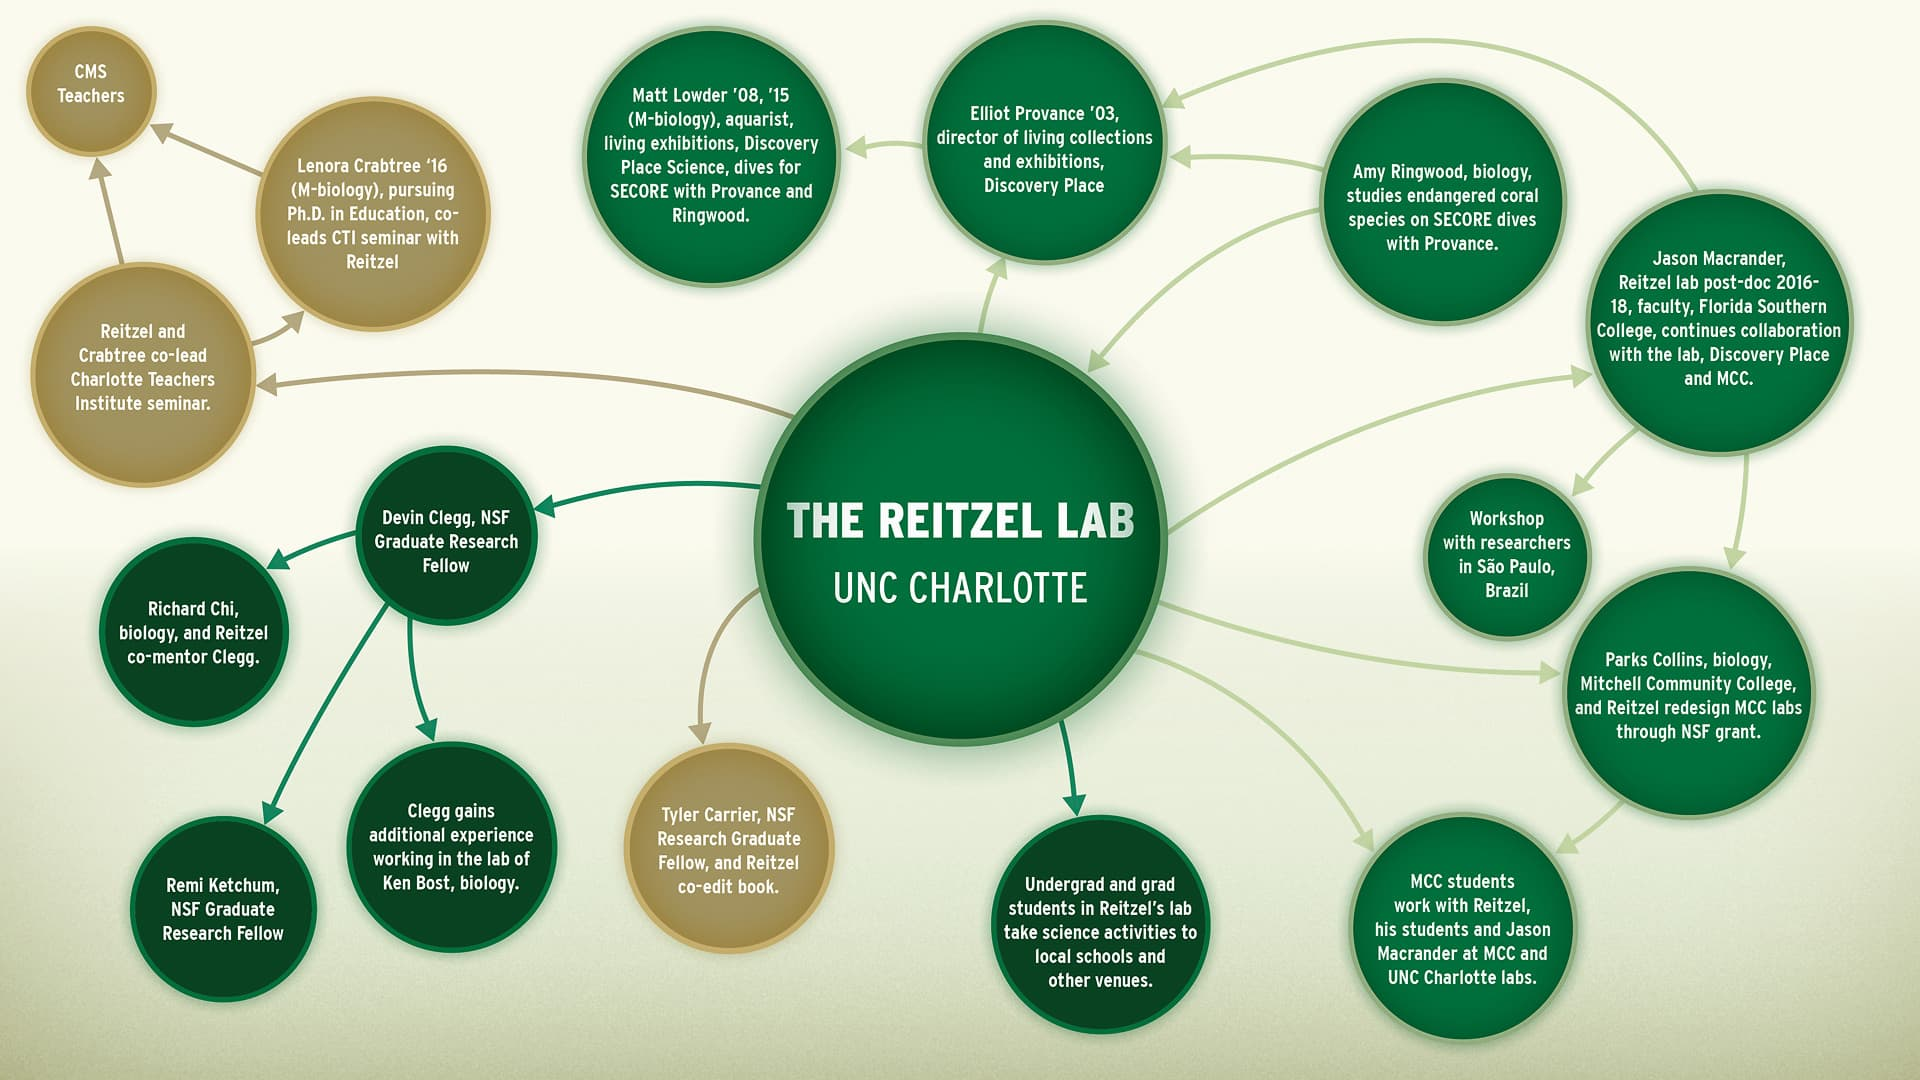 The Reitzel Lab at UNC Charlotte